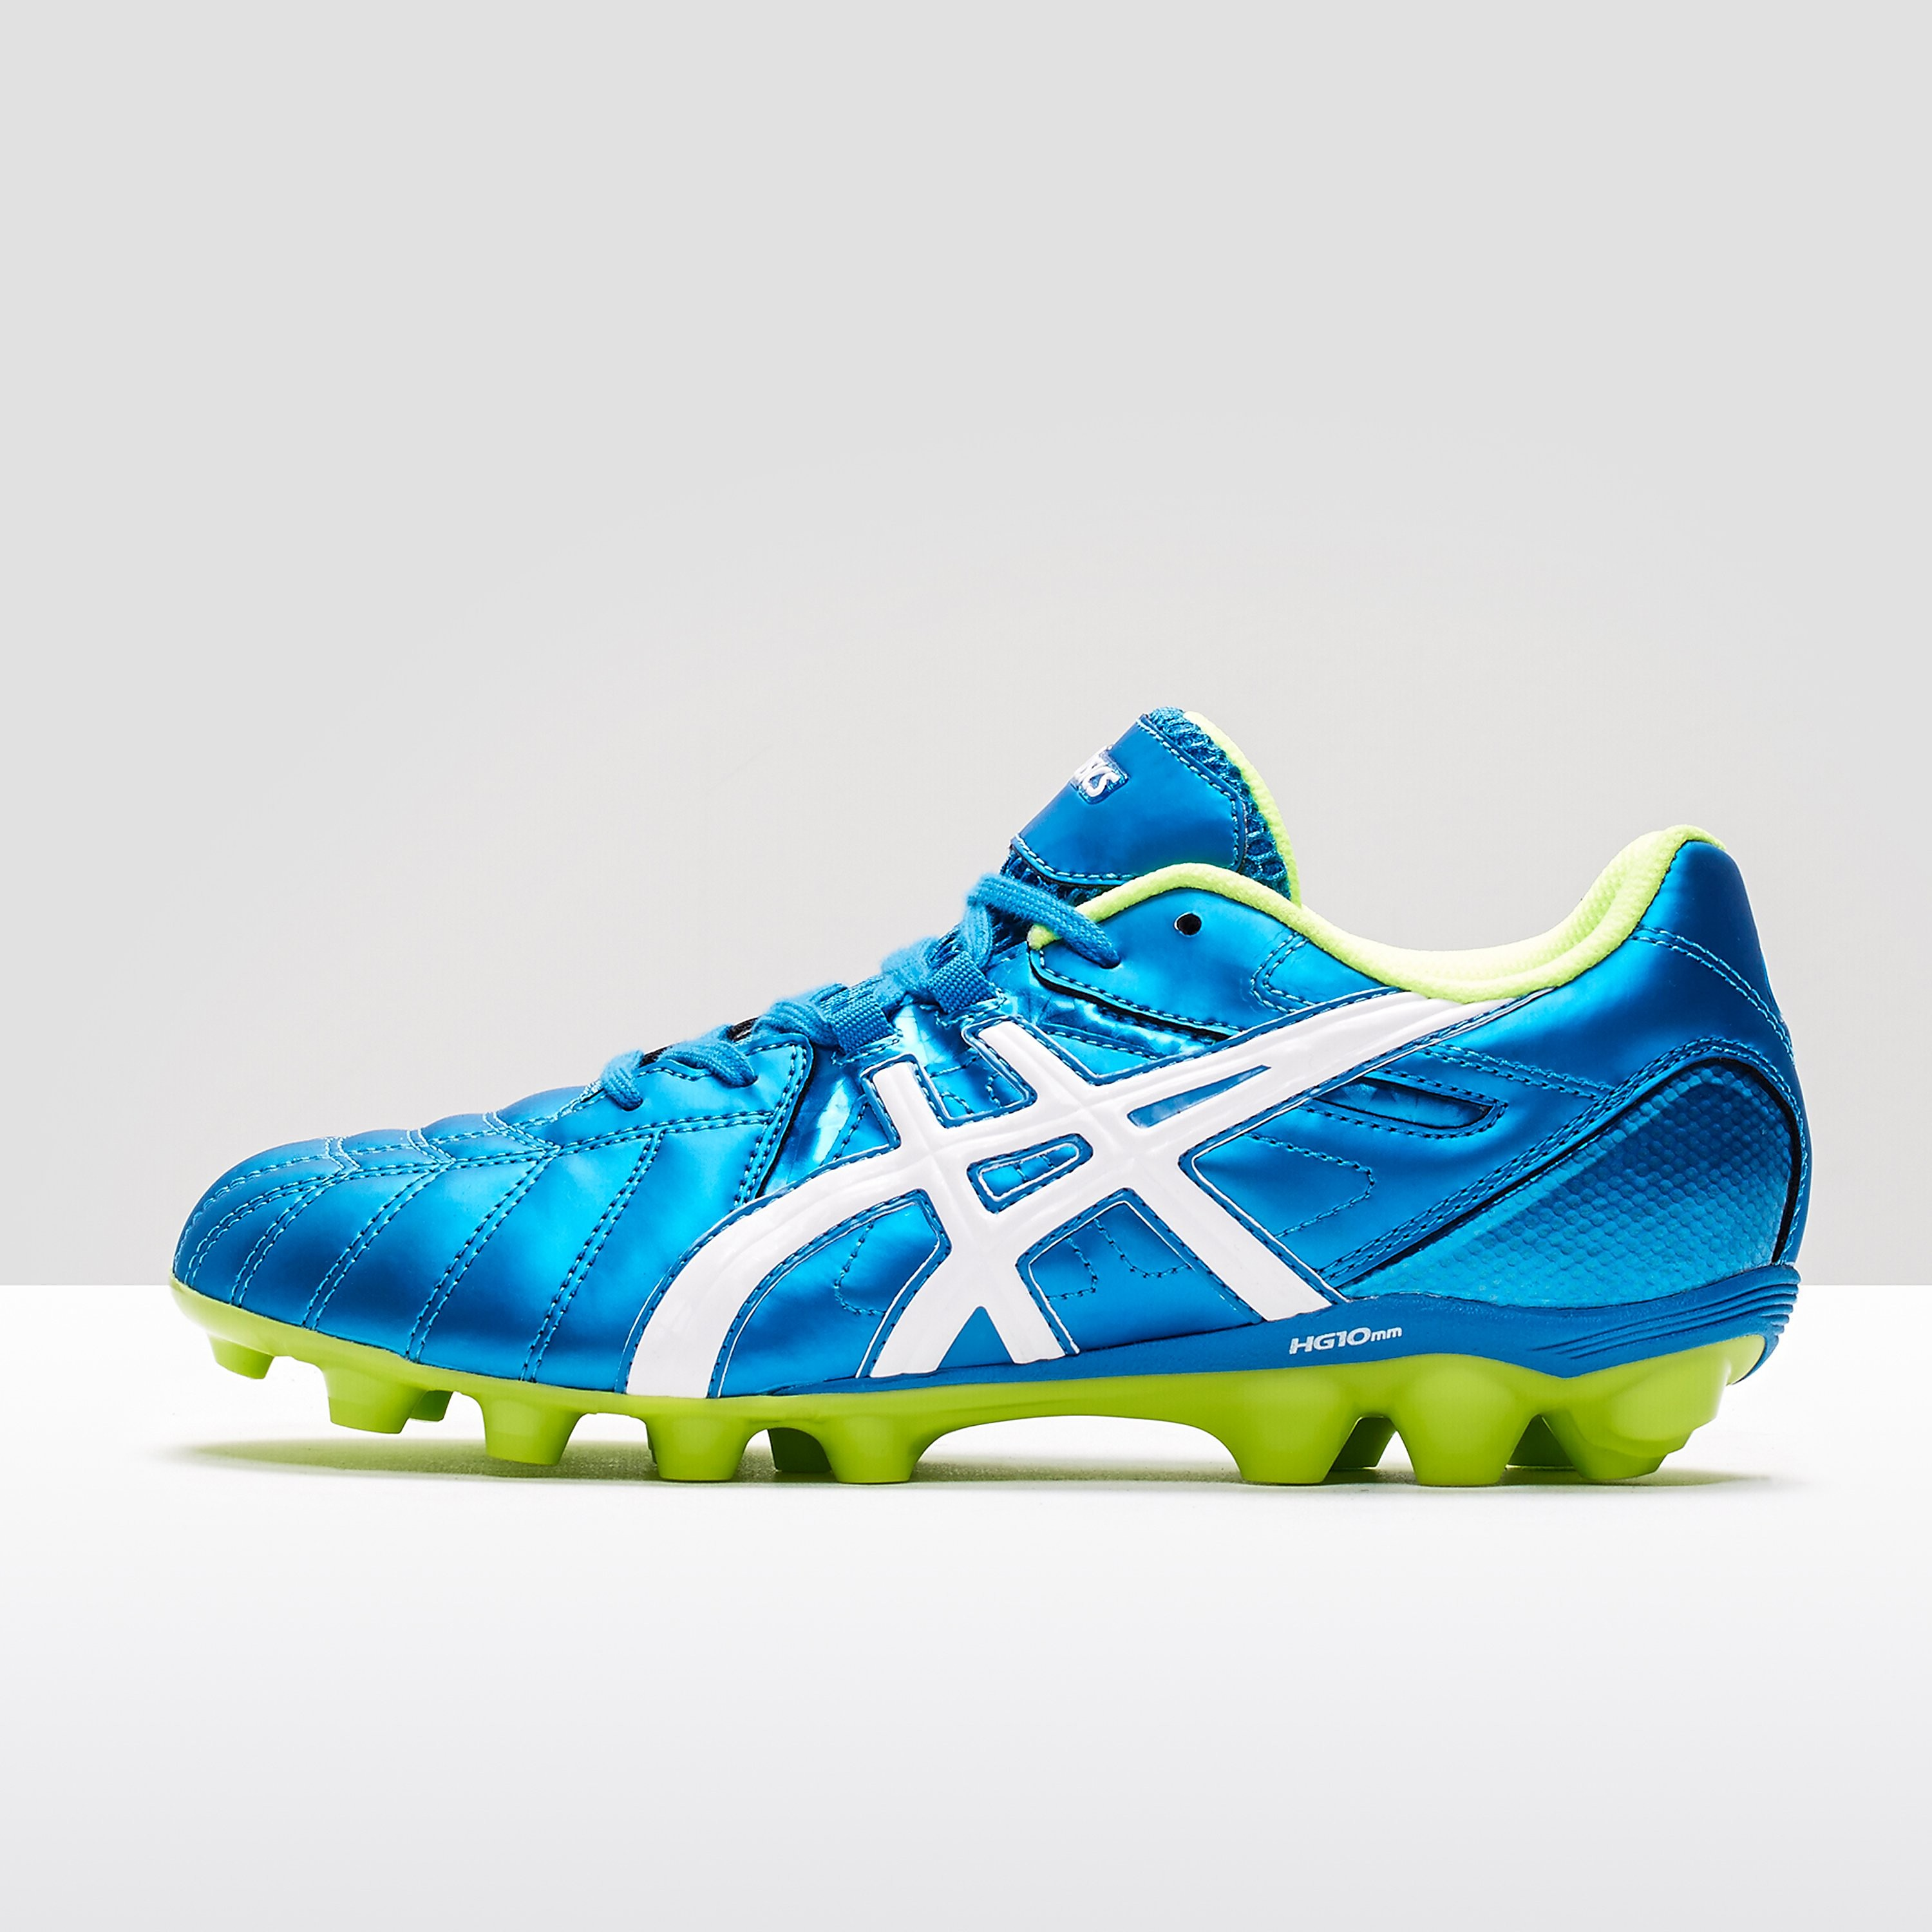 Asics Gel-Tigreor 8 K GS Junior Rugby Boot